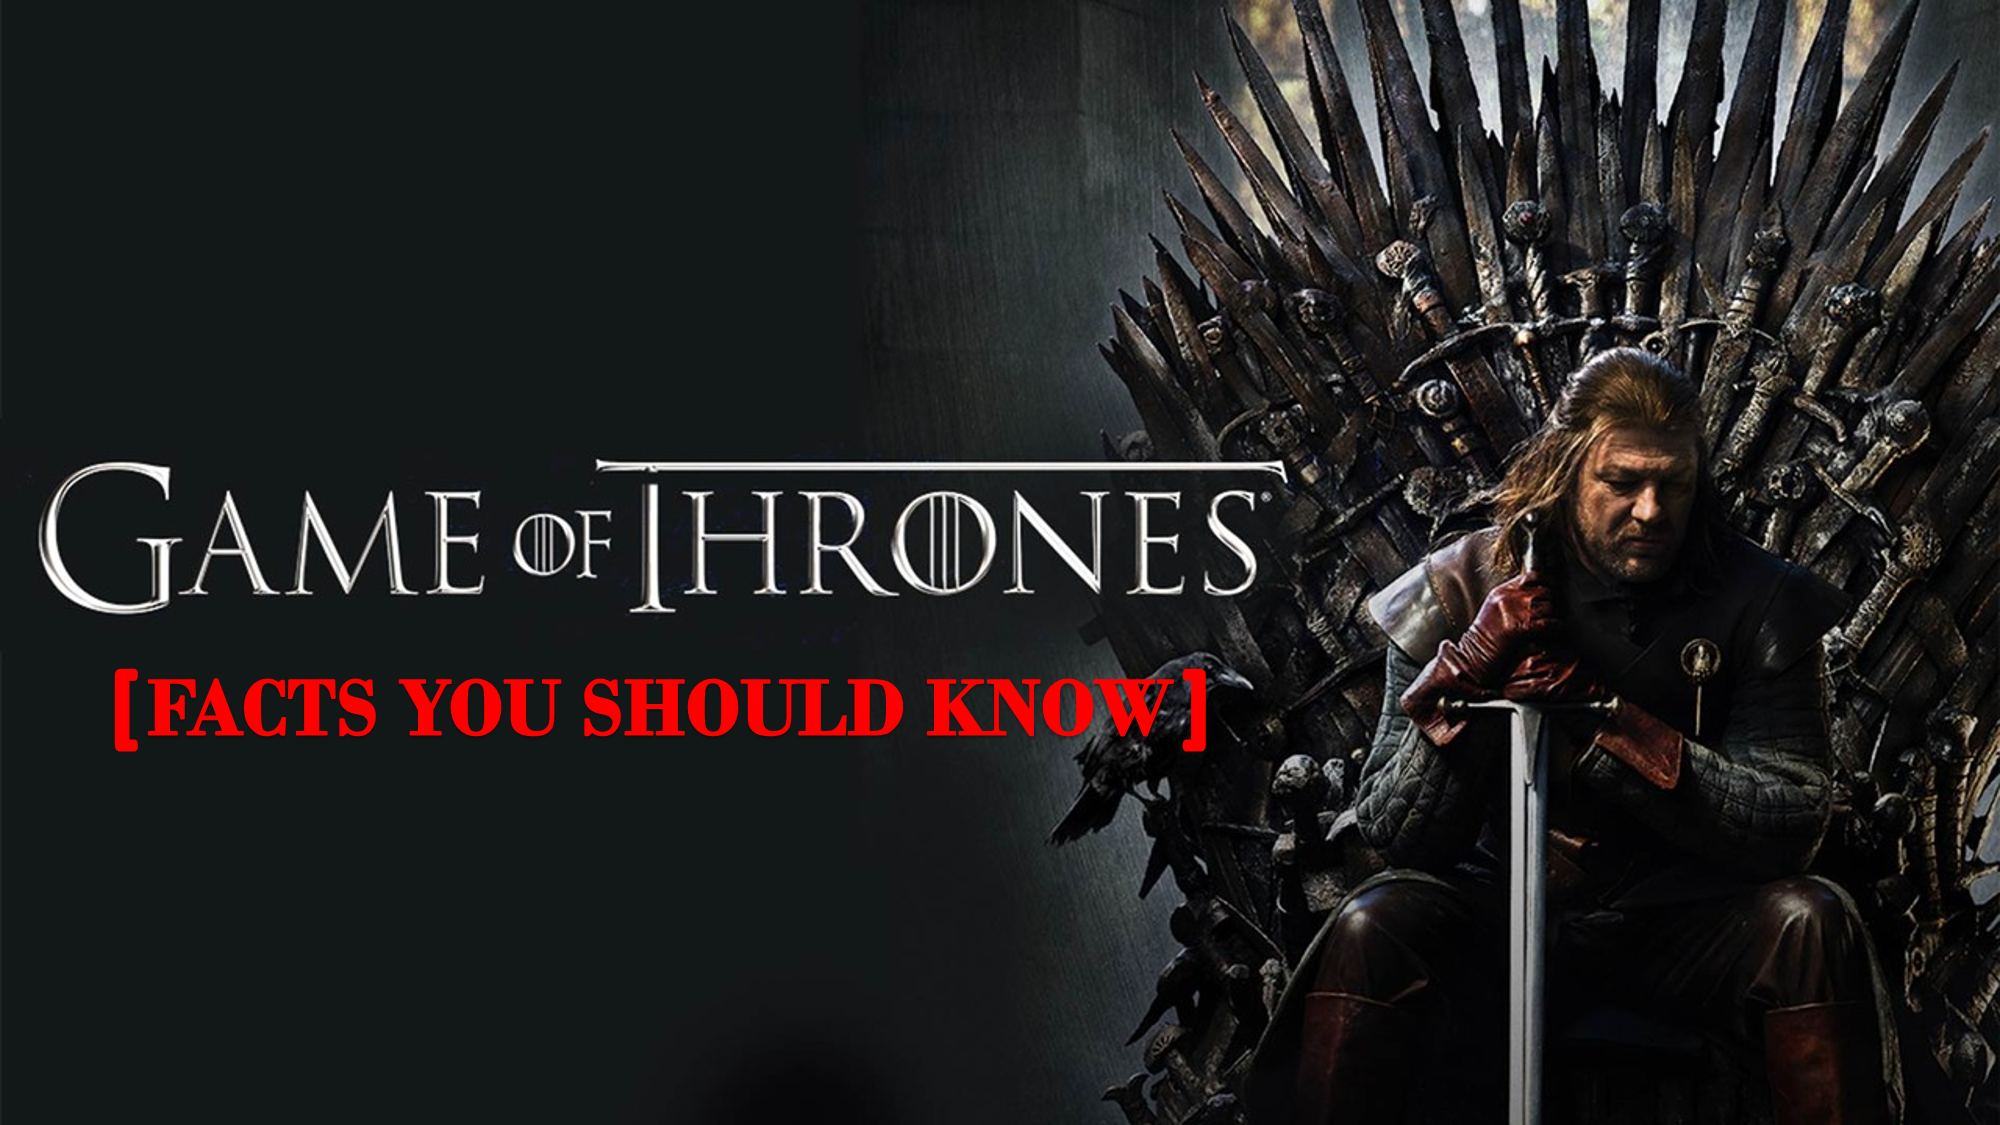 Game of Thrones Facts you should know